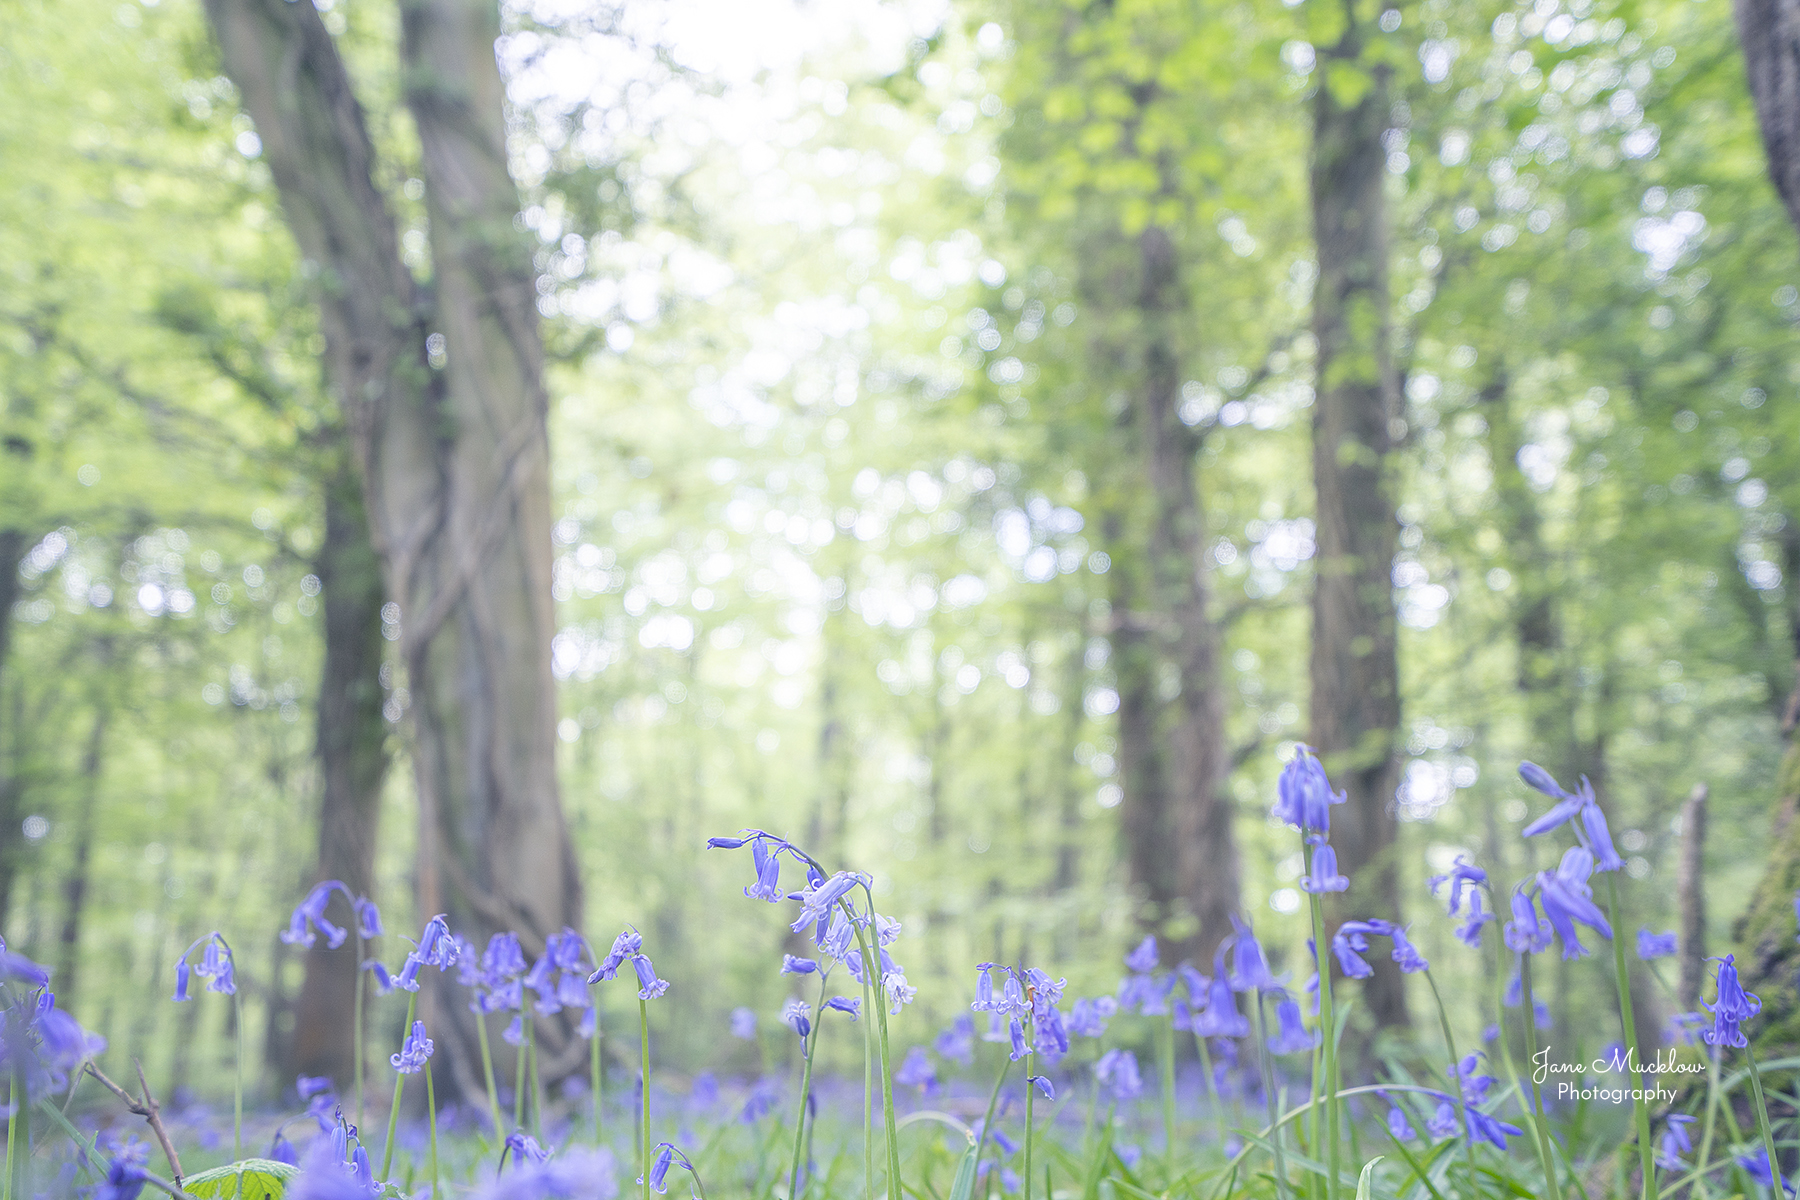 Photo of misty bluebells and trees in Dene Park, Tonbridge, by Jane Mucklow